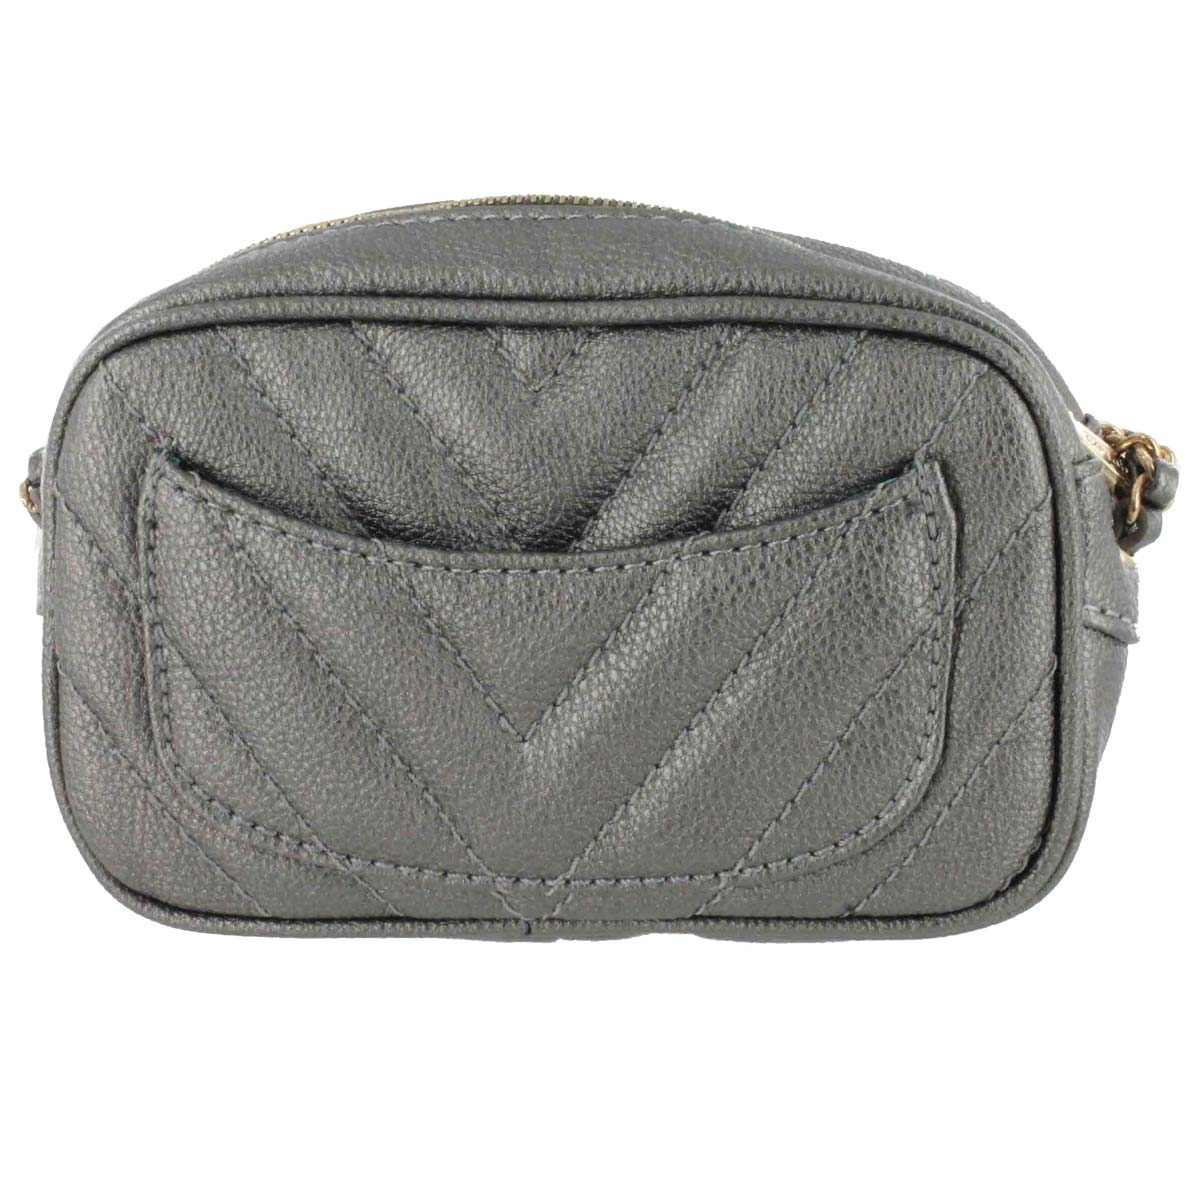 Lds pewter quilted mini cross body bag